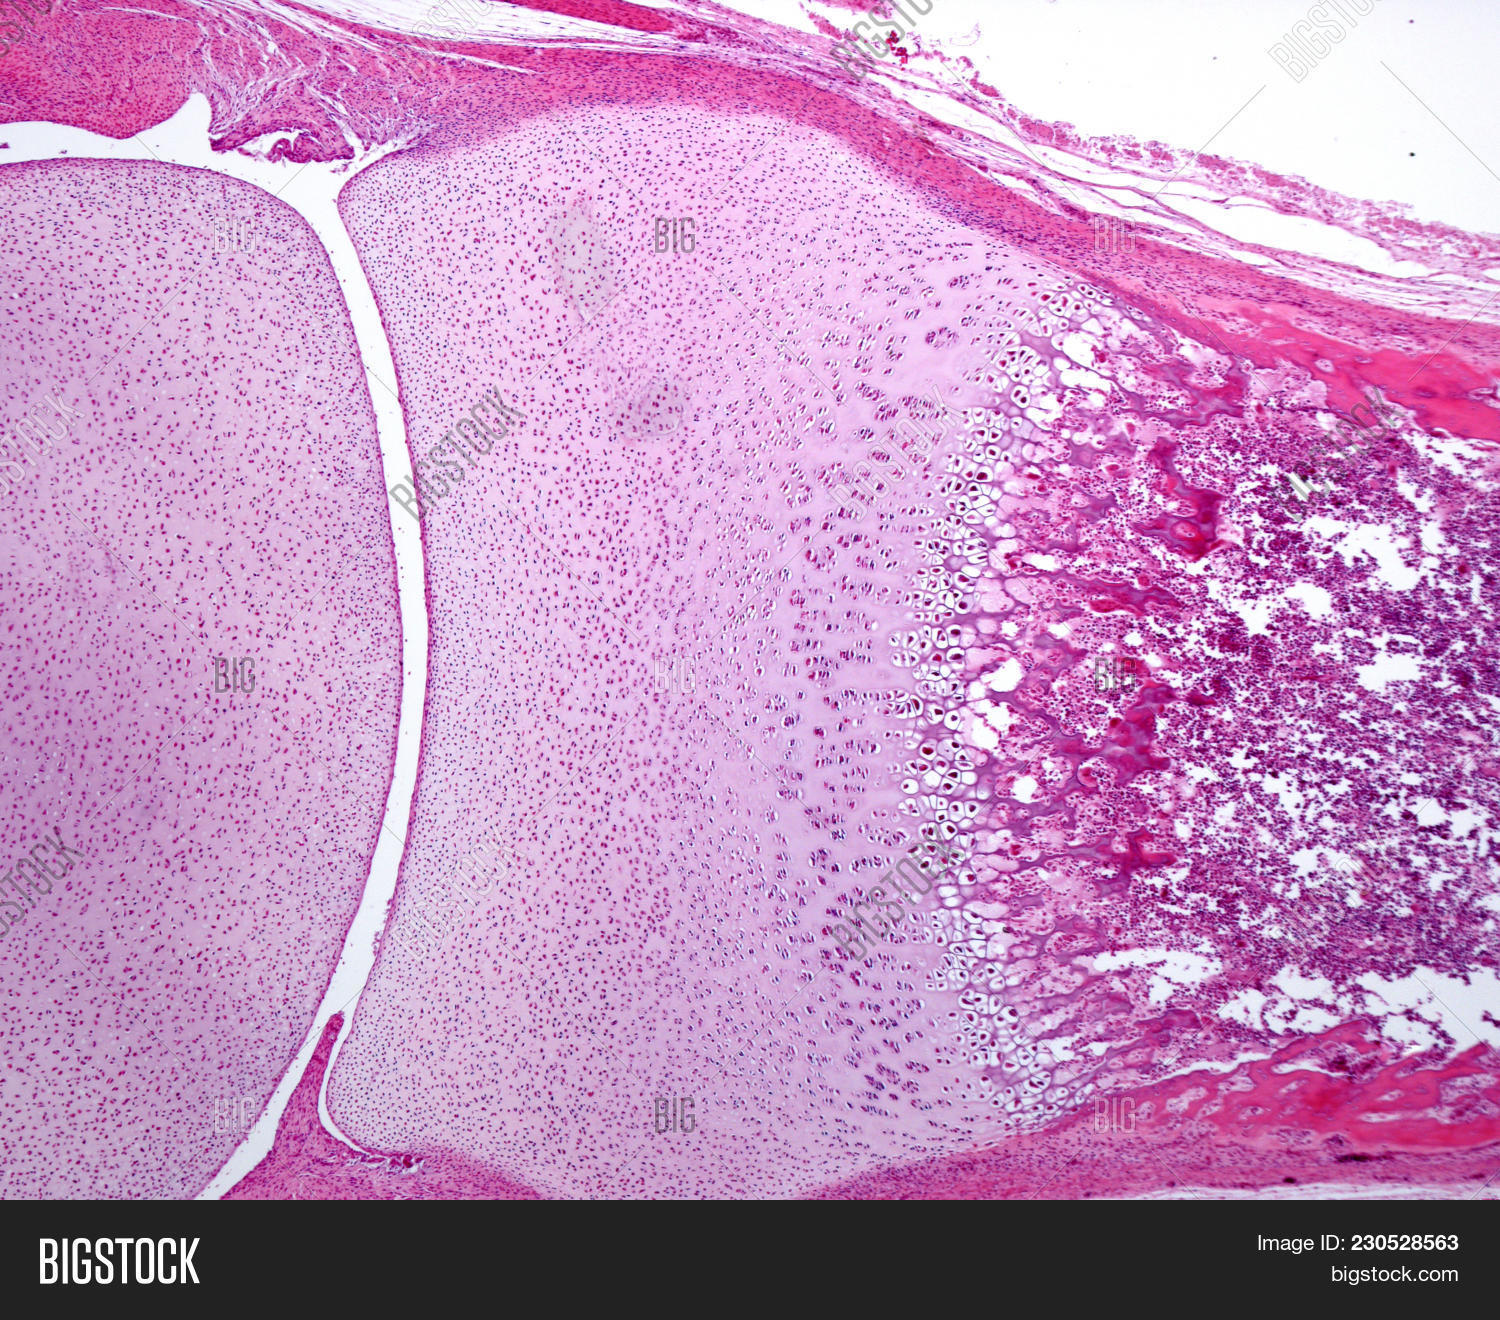 Hyaline Cartilage Under Microscope